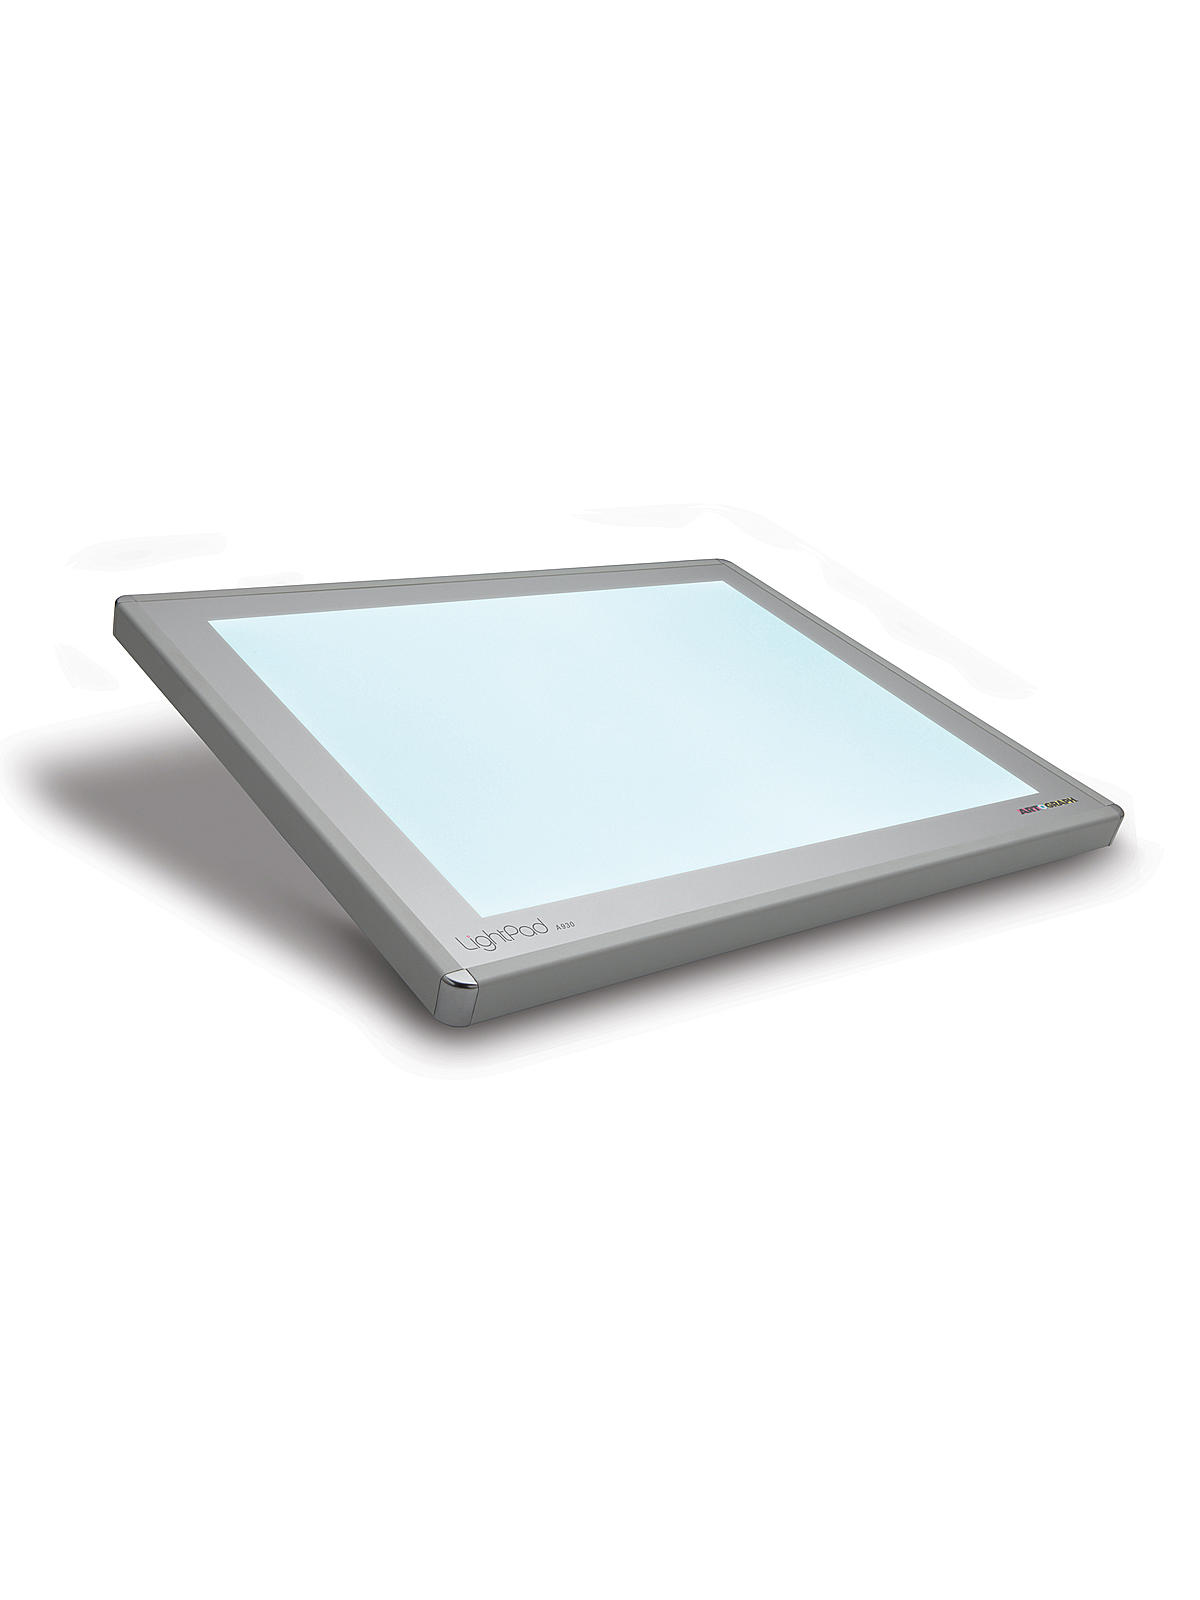 Lightpad Light Boxes 9 In. X 12 In.